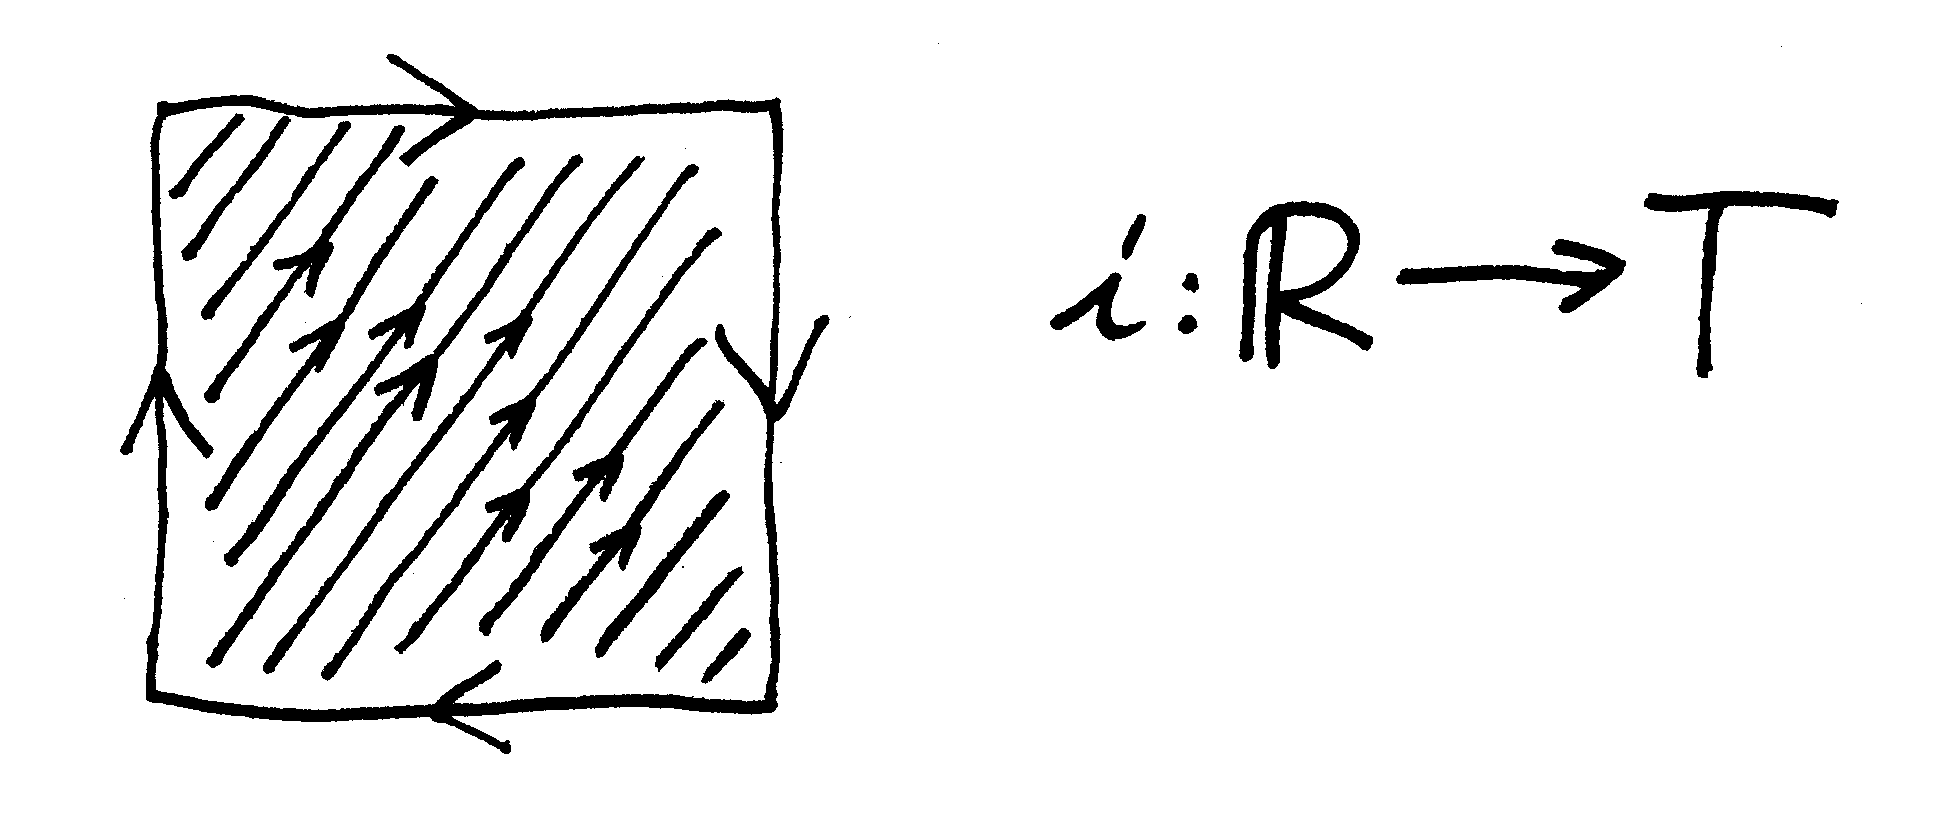 diffgeoIV/sketches/15.png